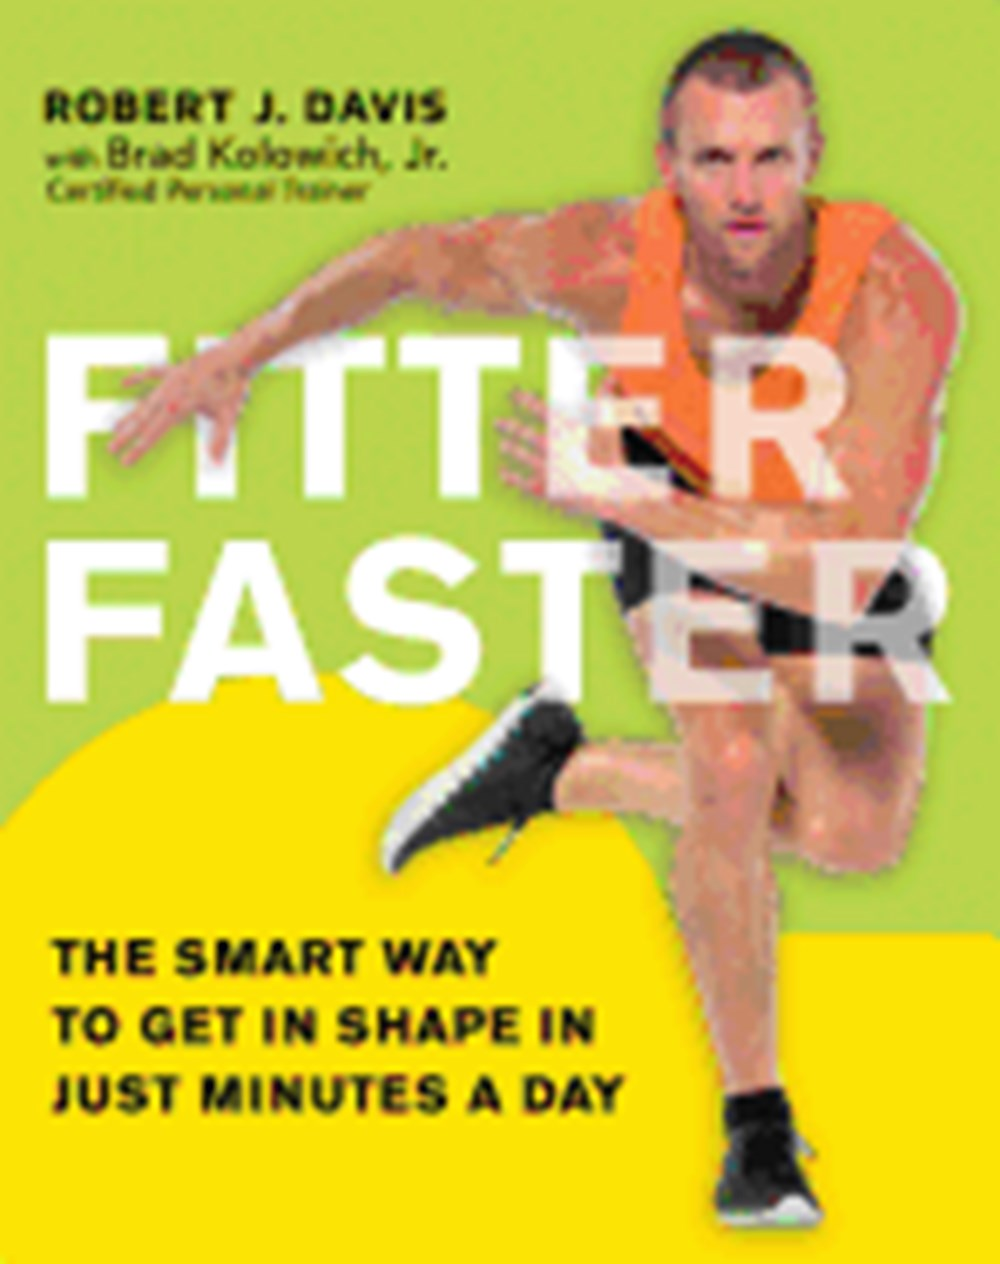 Fitter Faster The Smart Way to Get in Shape in Just Minutes a Day